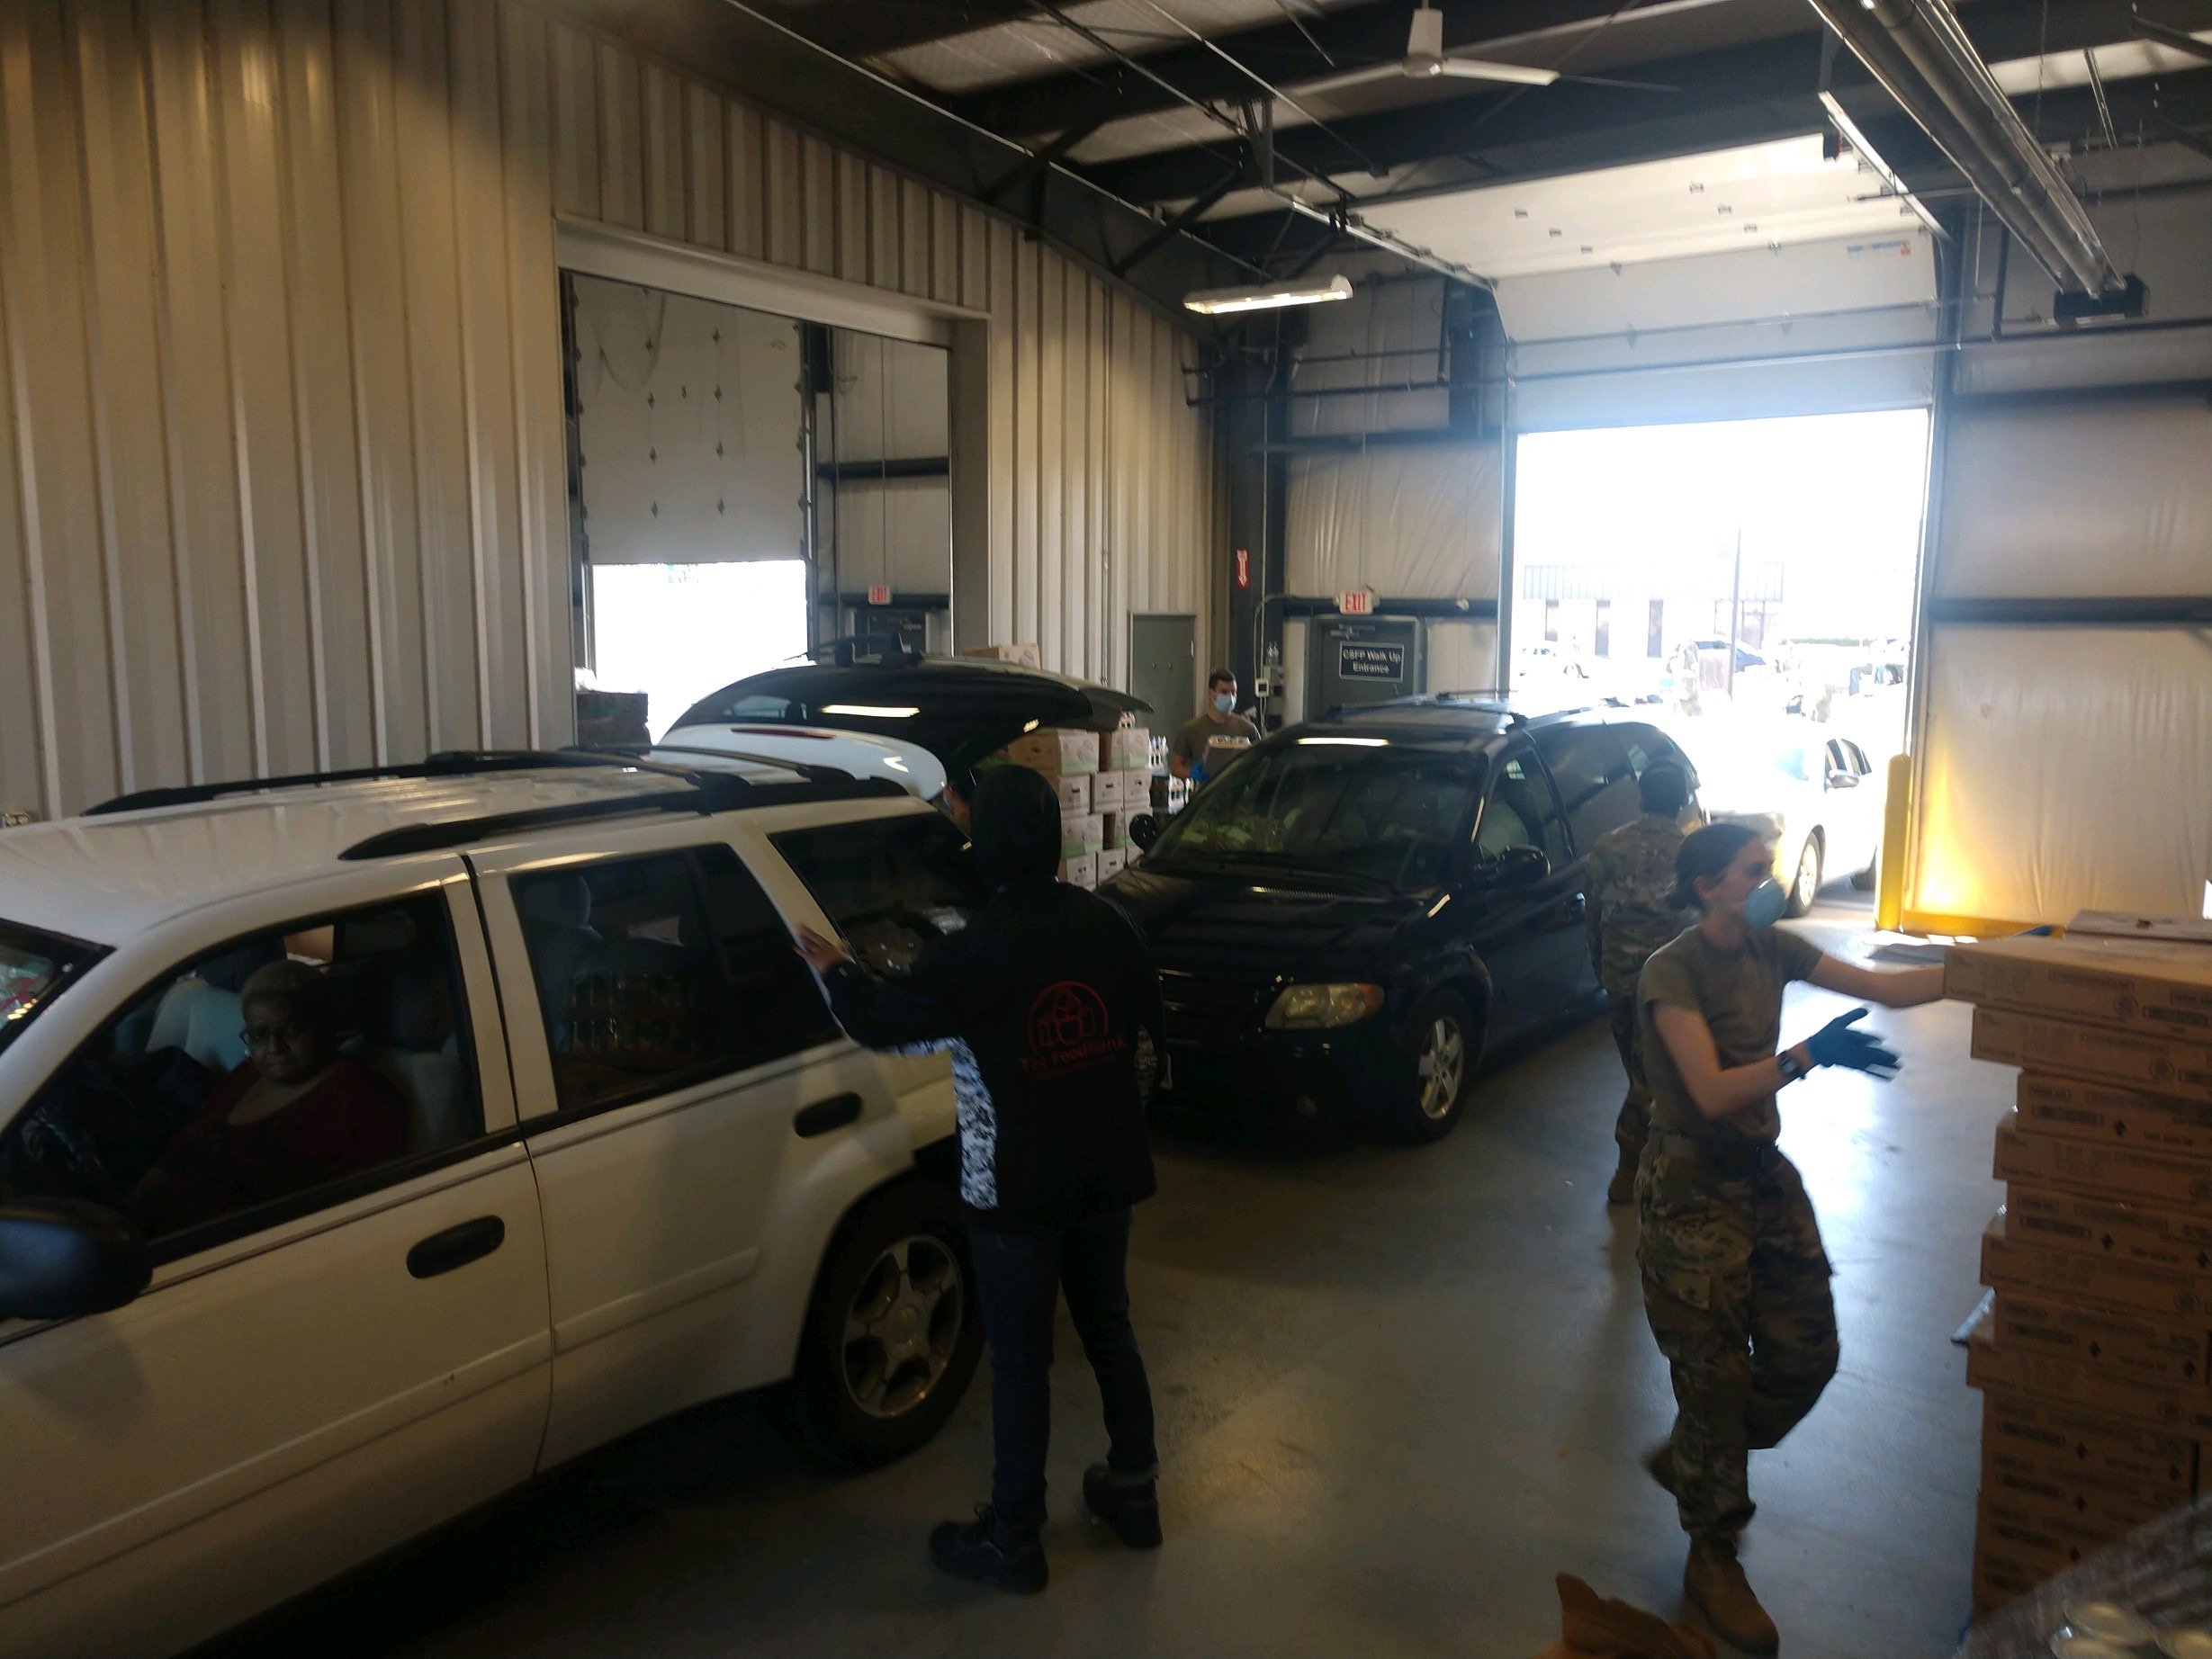 Soldiers load boxes into cars.